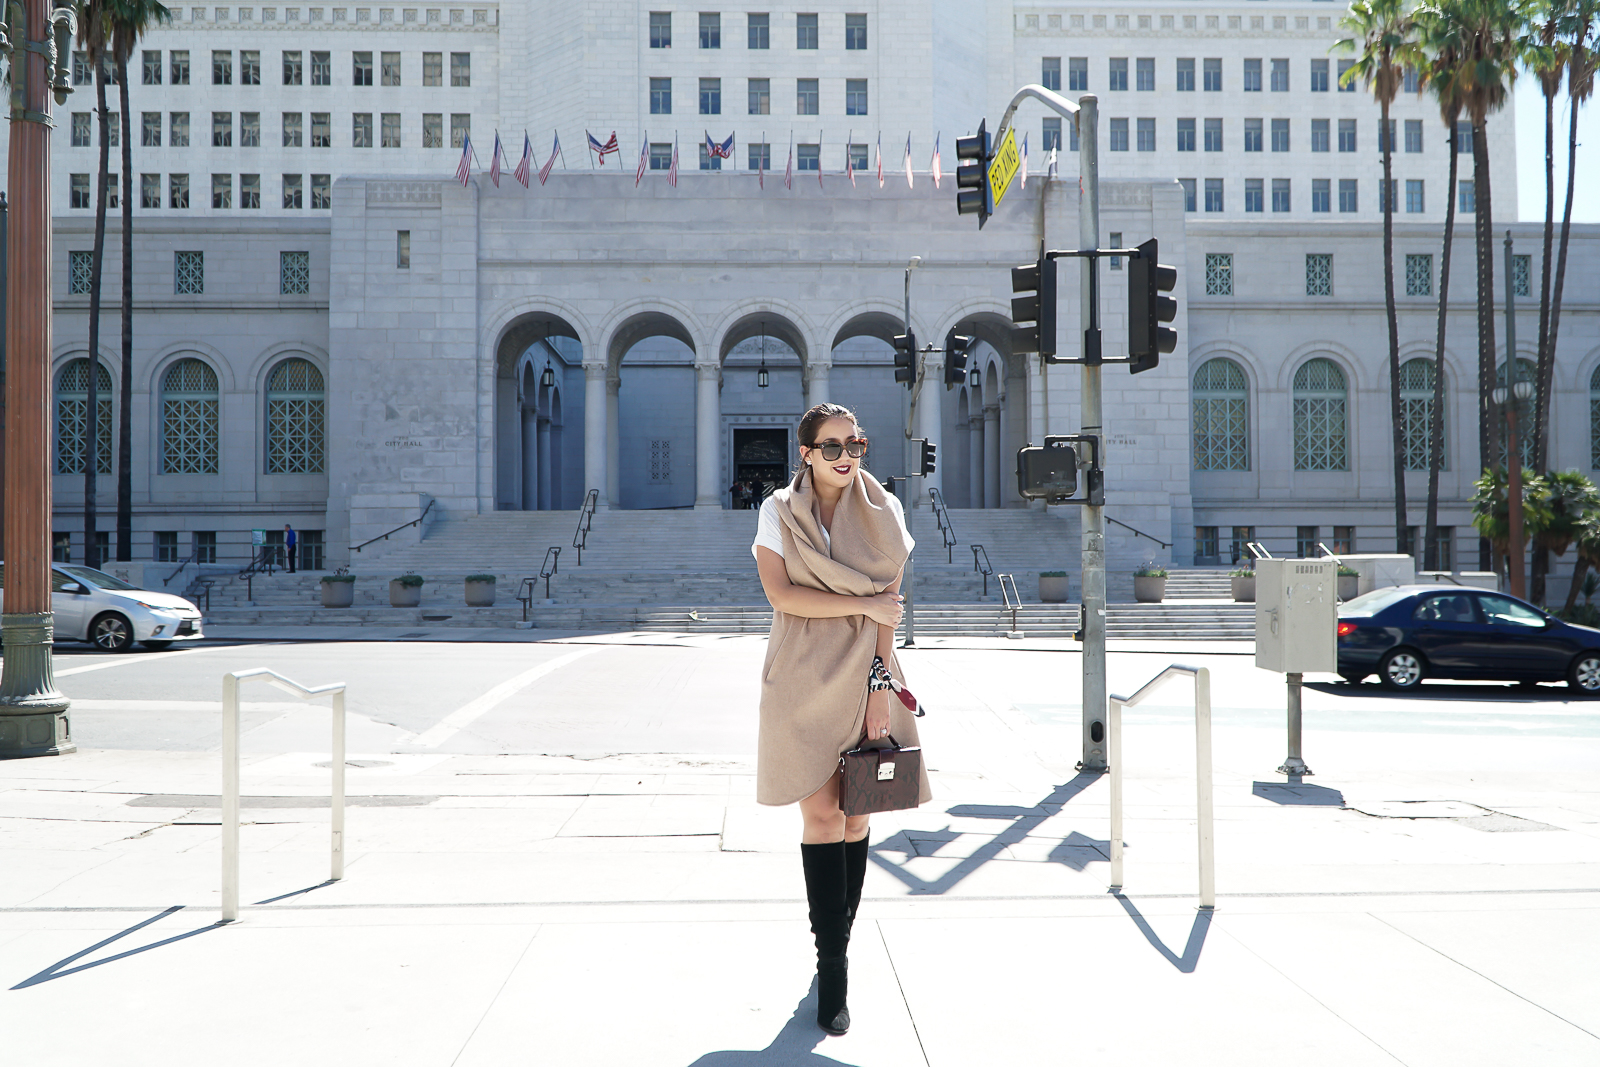 Zara Camel Waistcoat, Camel Waterfall Vest, Zara Black chunky heel boots, Zara Scarf, Celine Audrey Sunglasses, Fall Outfit Ideas, Fall Fashion, bracelet scarf, Downtown LA Photoshoot, Los Angeles City Hall